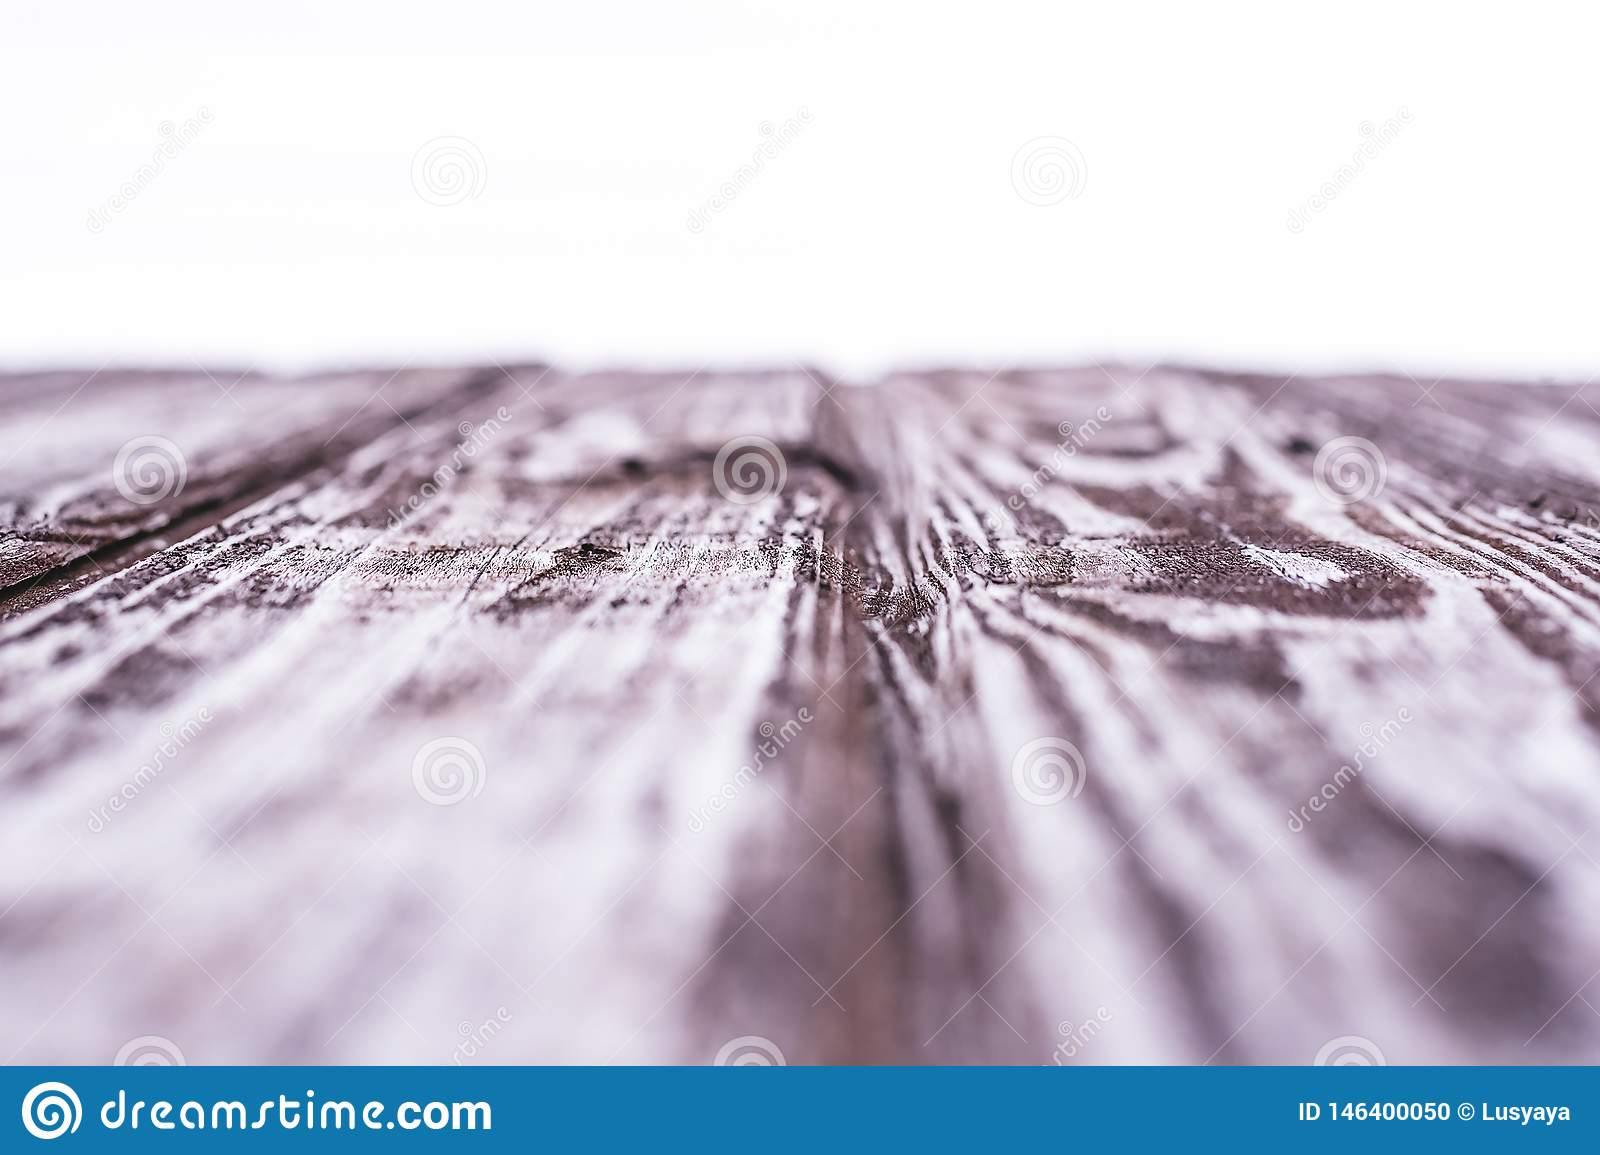 Wooden fence with Rustic plank brown bark wood backgrounds, Abstract background Image